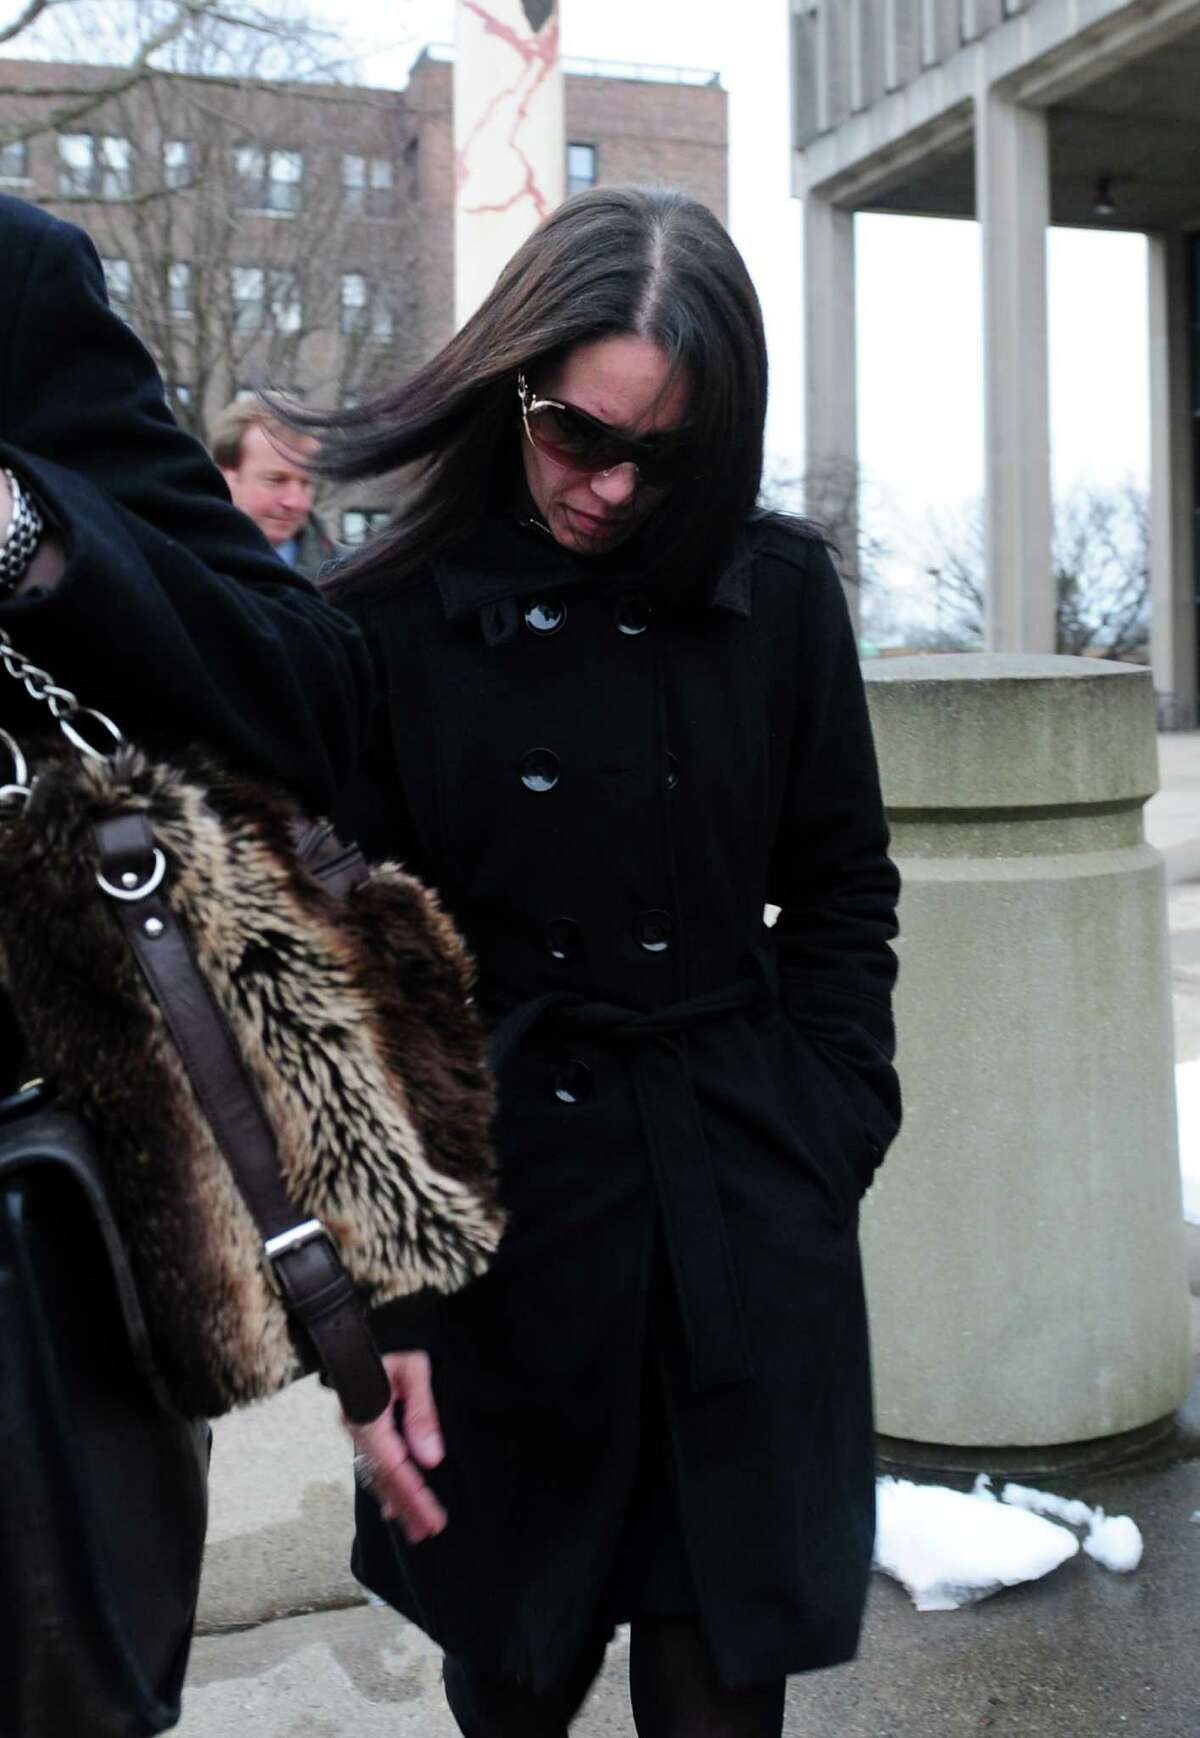 Nouel Alba leaves the federal courthouse in Bridgeport, Conn. Thursday, Jan. 17, 2013 after pleading not guilty to scamming donors who wished to contribute to the funeral costs of Noah Pozner, a 6-year-old victim of the Newtown shooting.